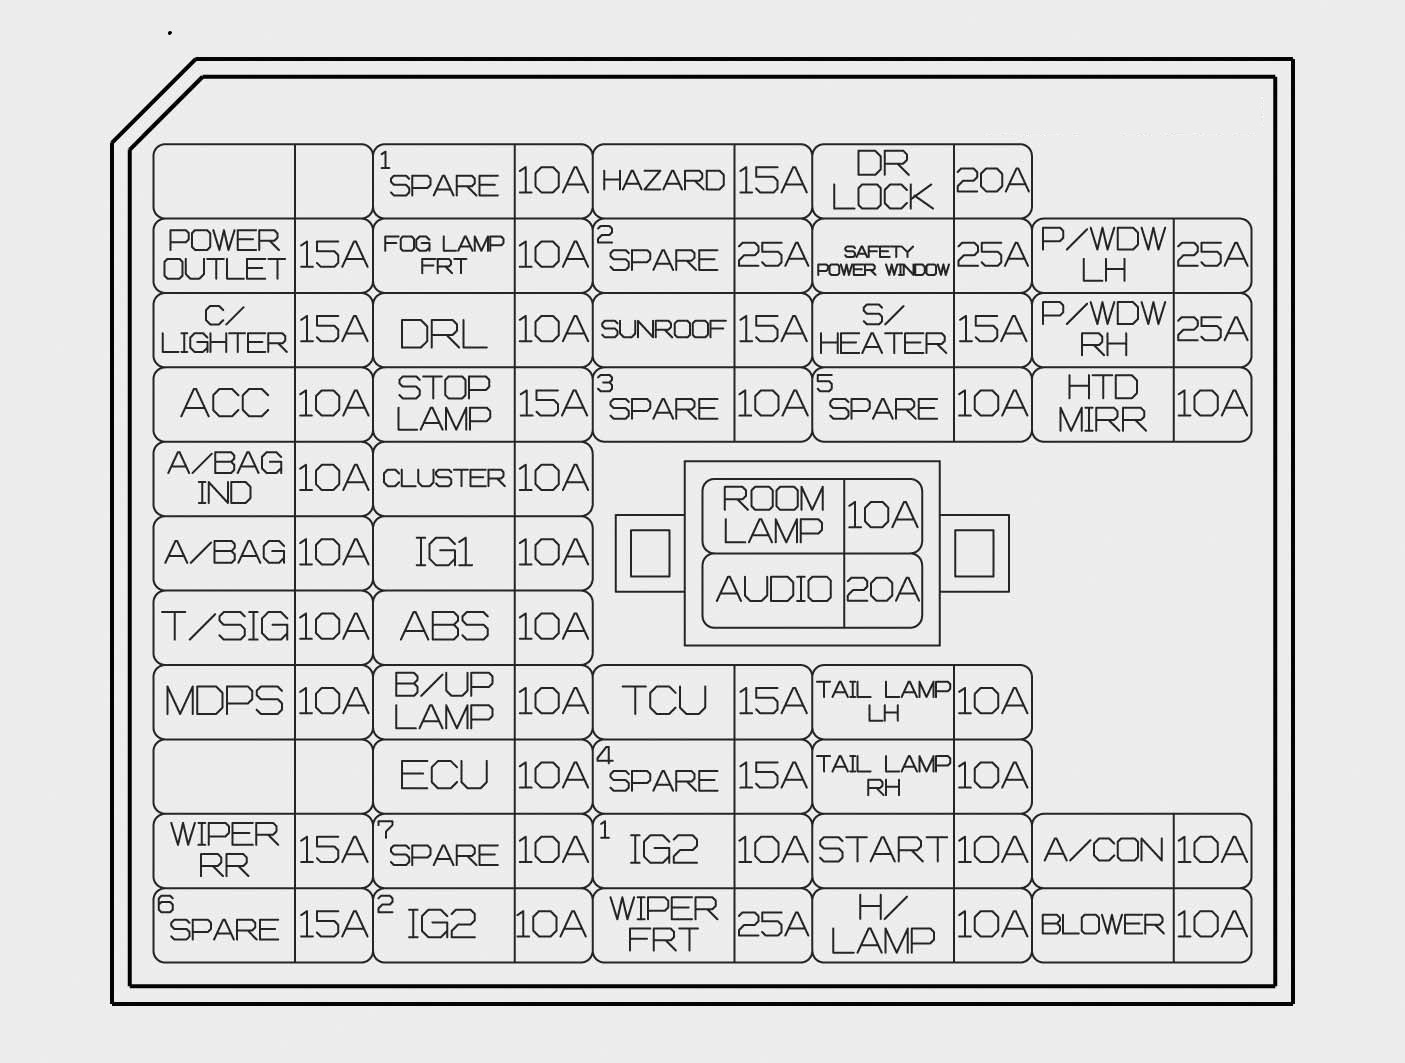 Hyundai Sonata (2015) – fuse box diagram